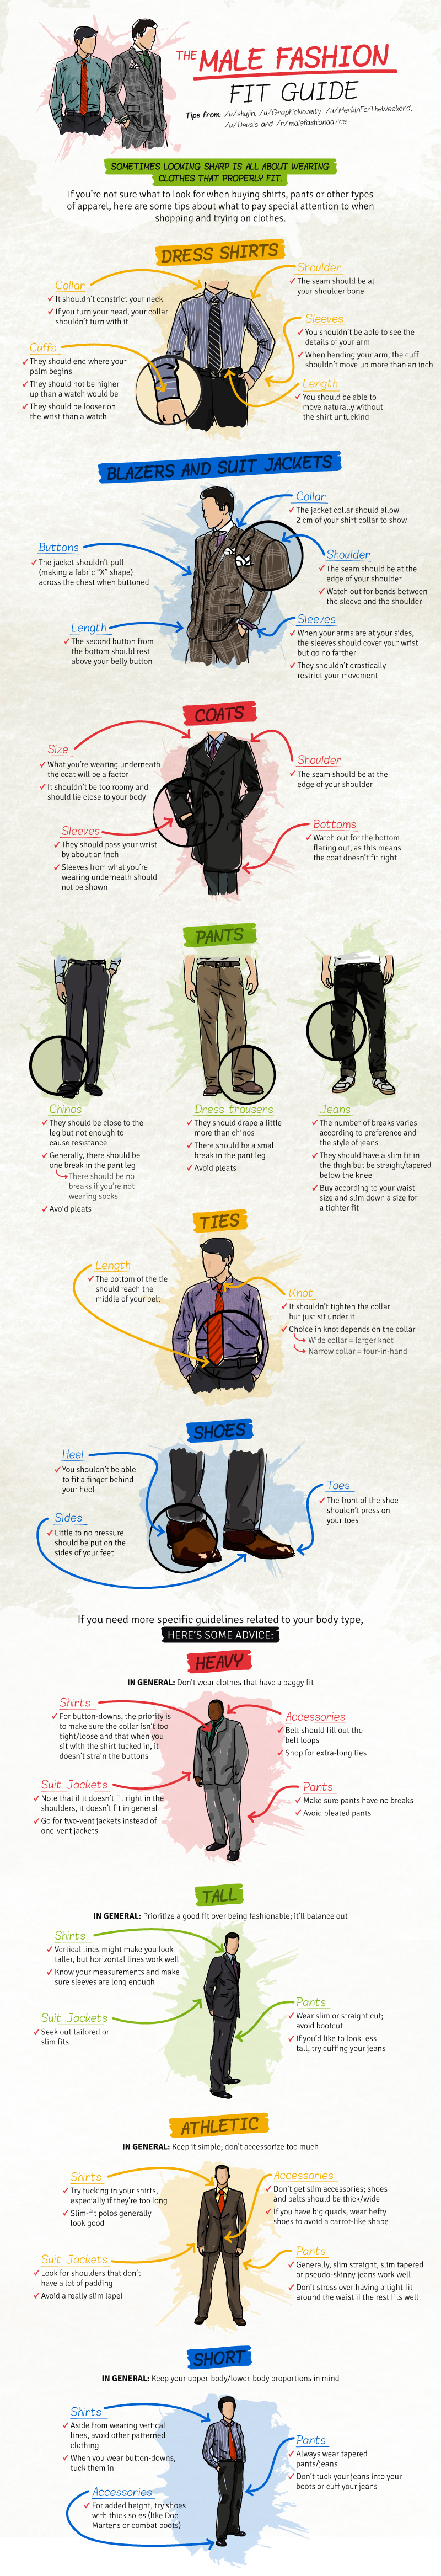 Every Thing You Need to Know About Men's Fashion